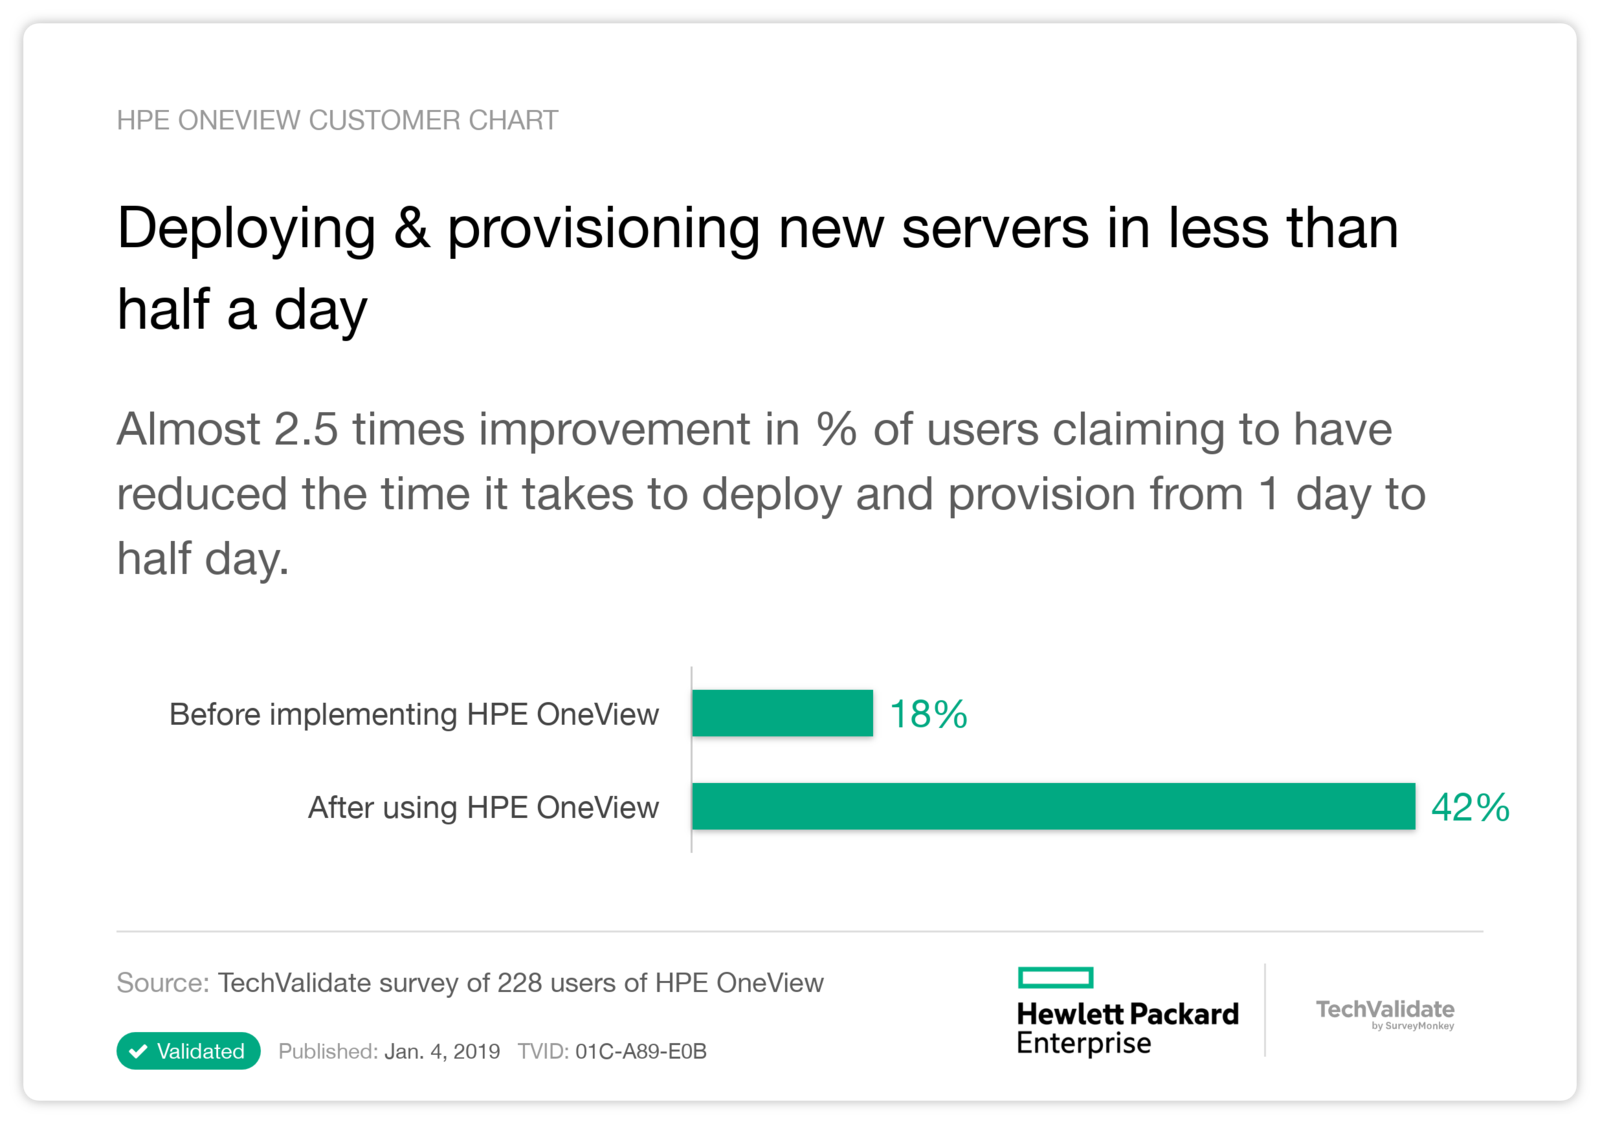 Deploying & provisioning new servers in less than half a day